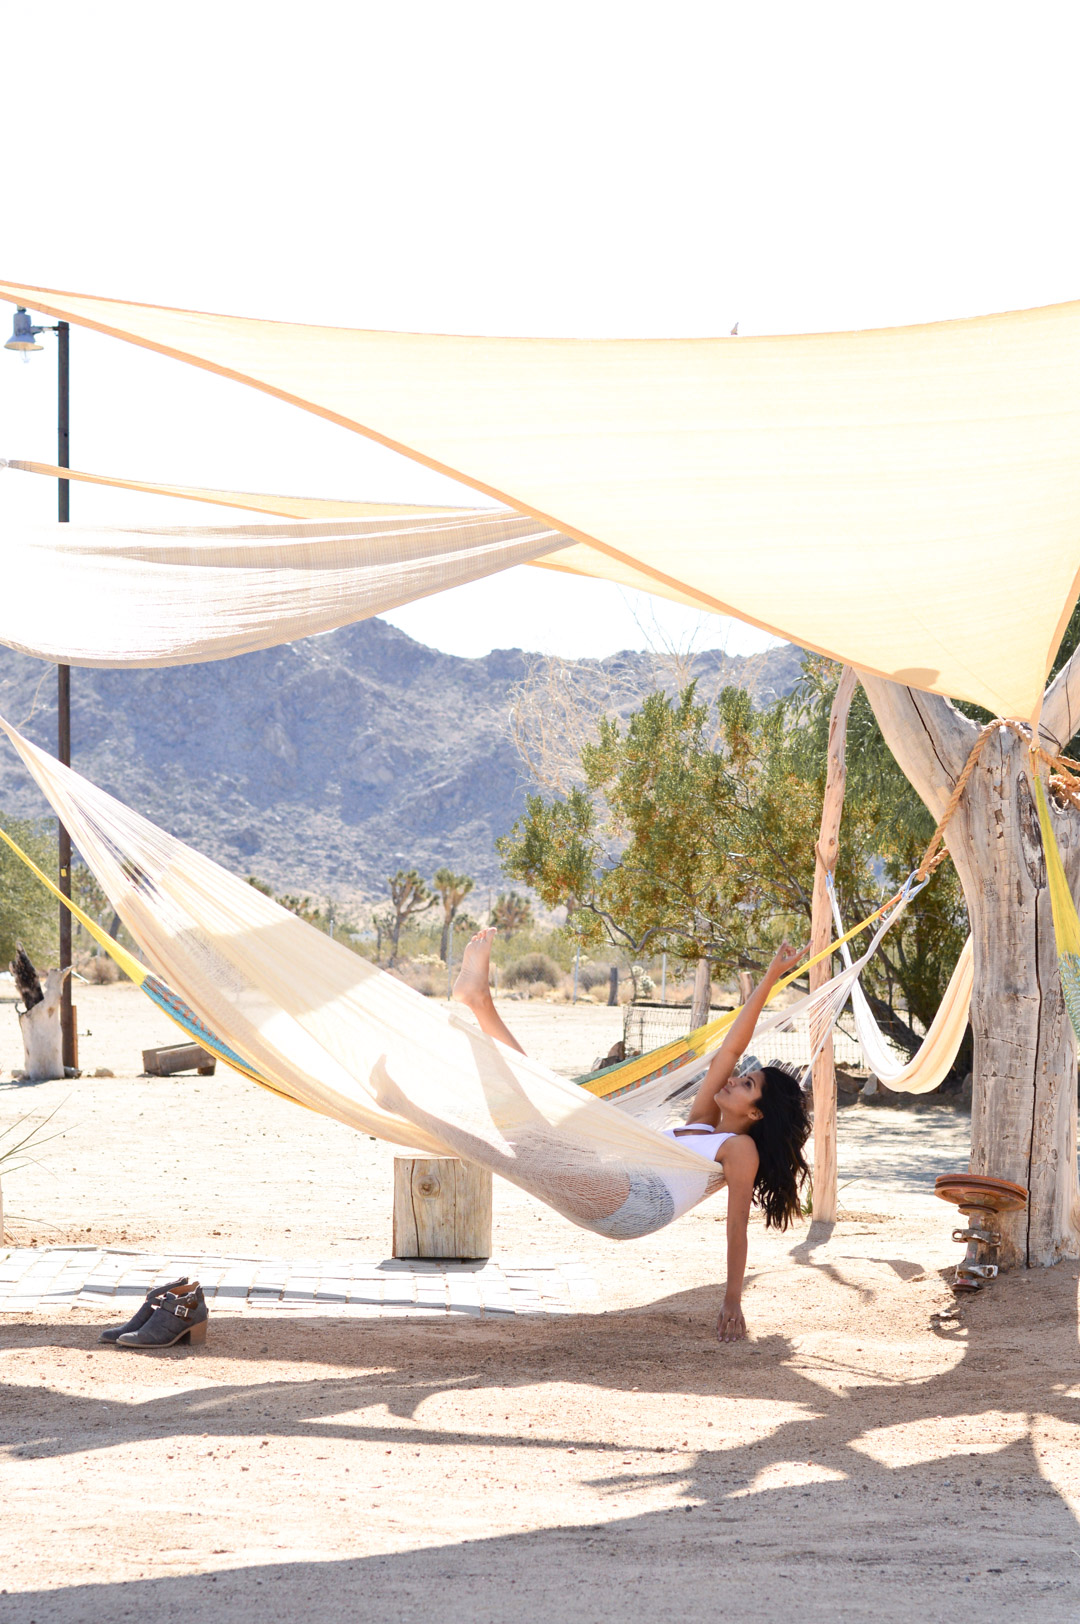 joshua-tree-hammocks-desert-california-travel-airbnb-where-to-stay 6